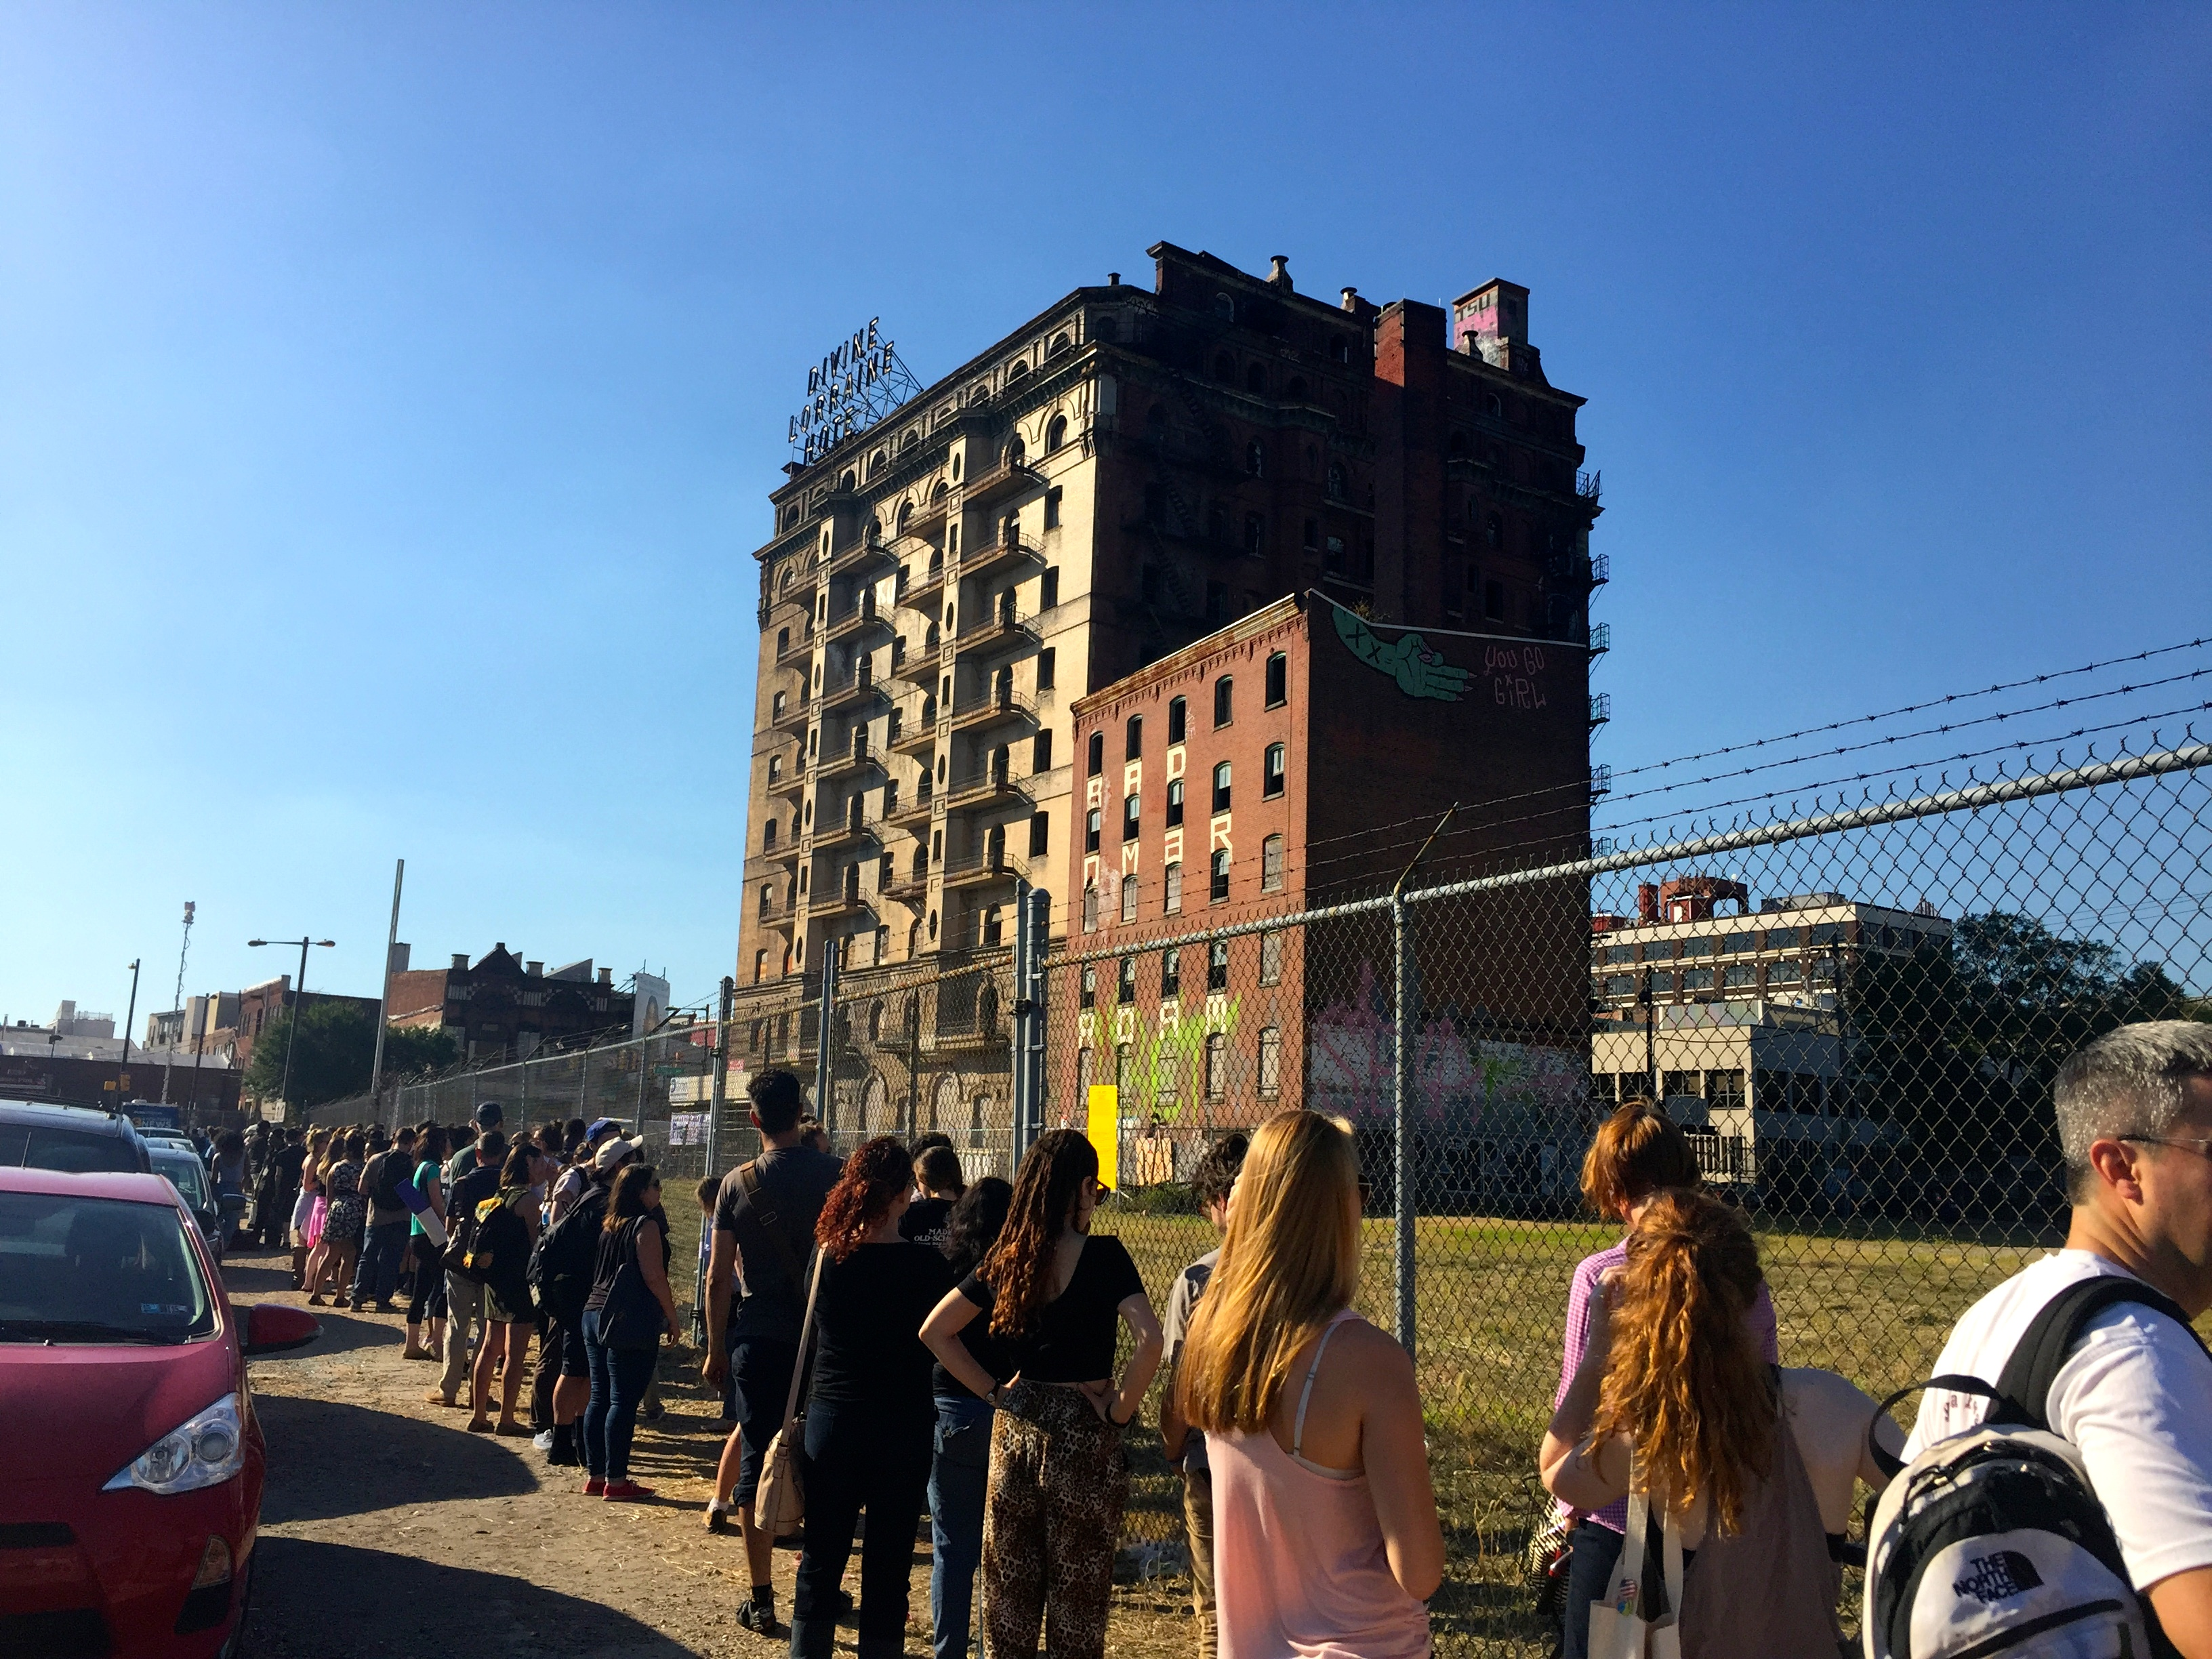 People wait in line to see the inside of the Divine Lorraine Hotel on the day of groundbreaking.